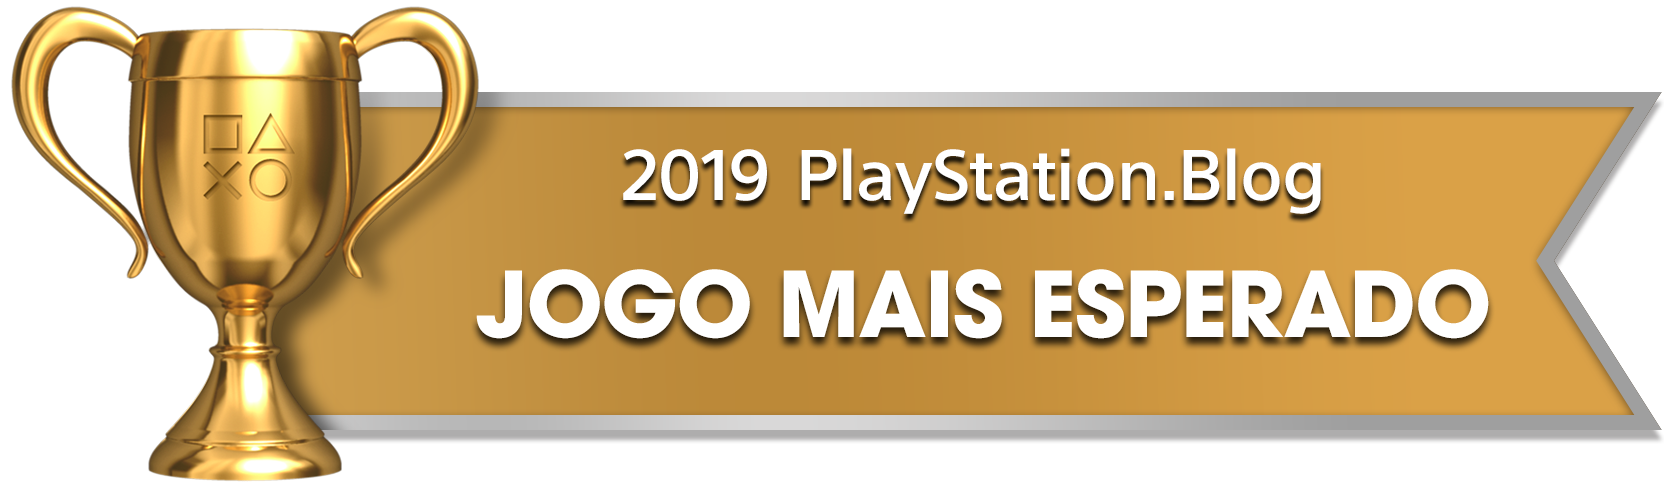 PS Blog Game of the Year 2019 - Most Anticipated - 2 - Gold